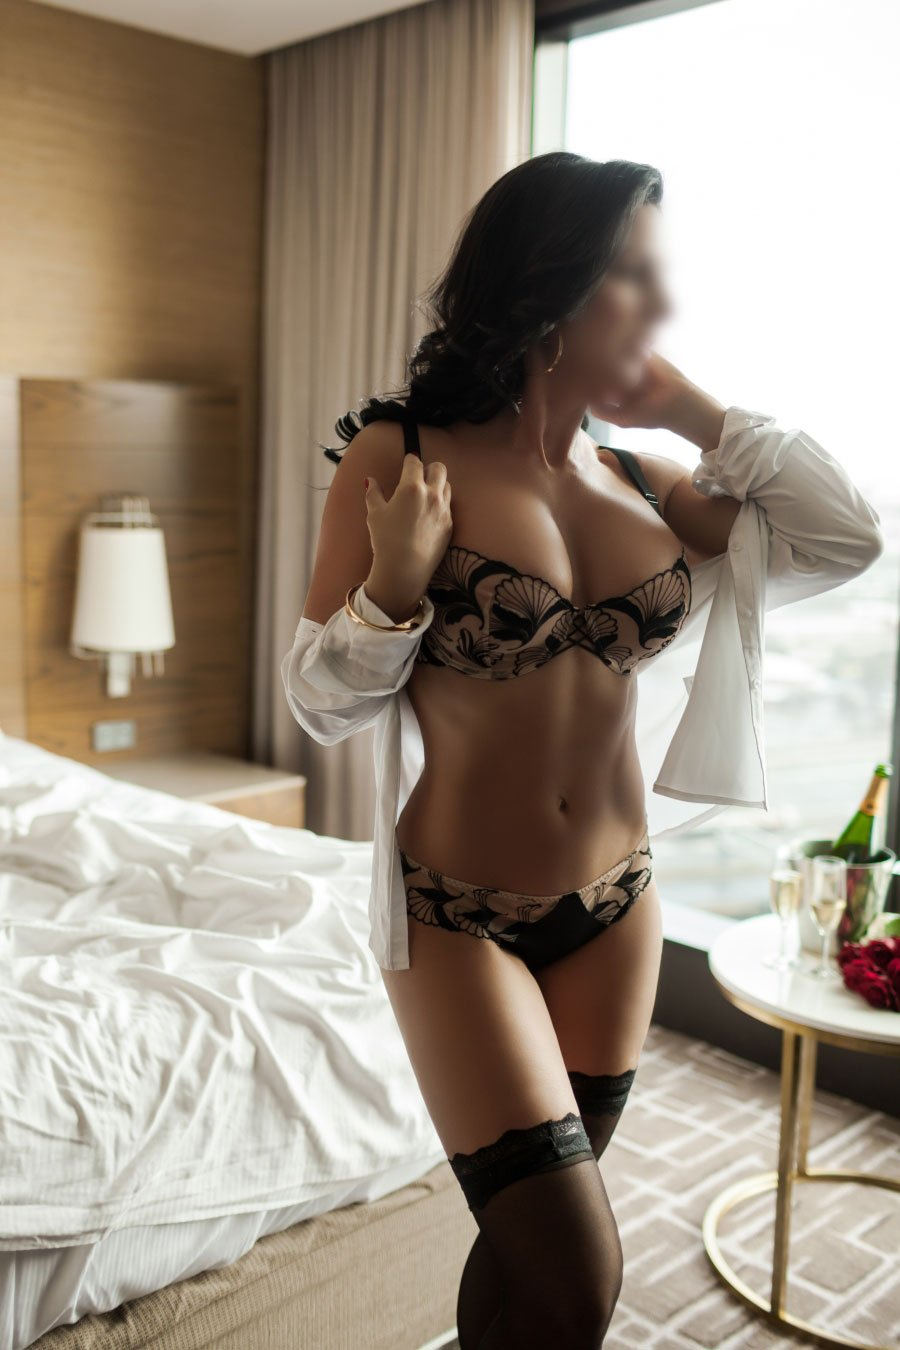 Taylor Rose - Sydney Tour Update of Availability 25th - 27th February